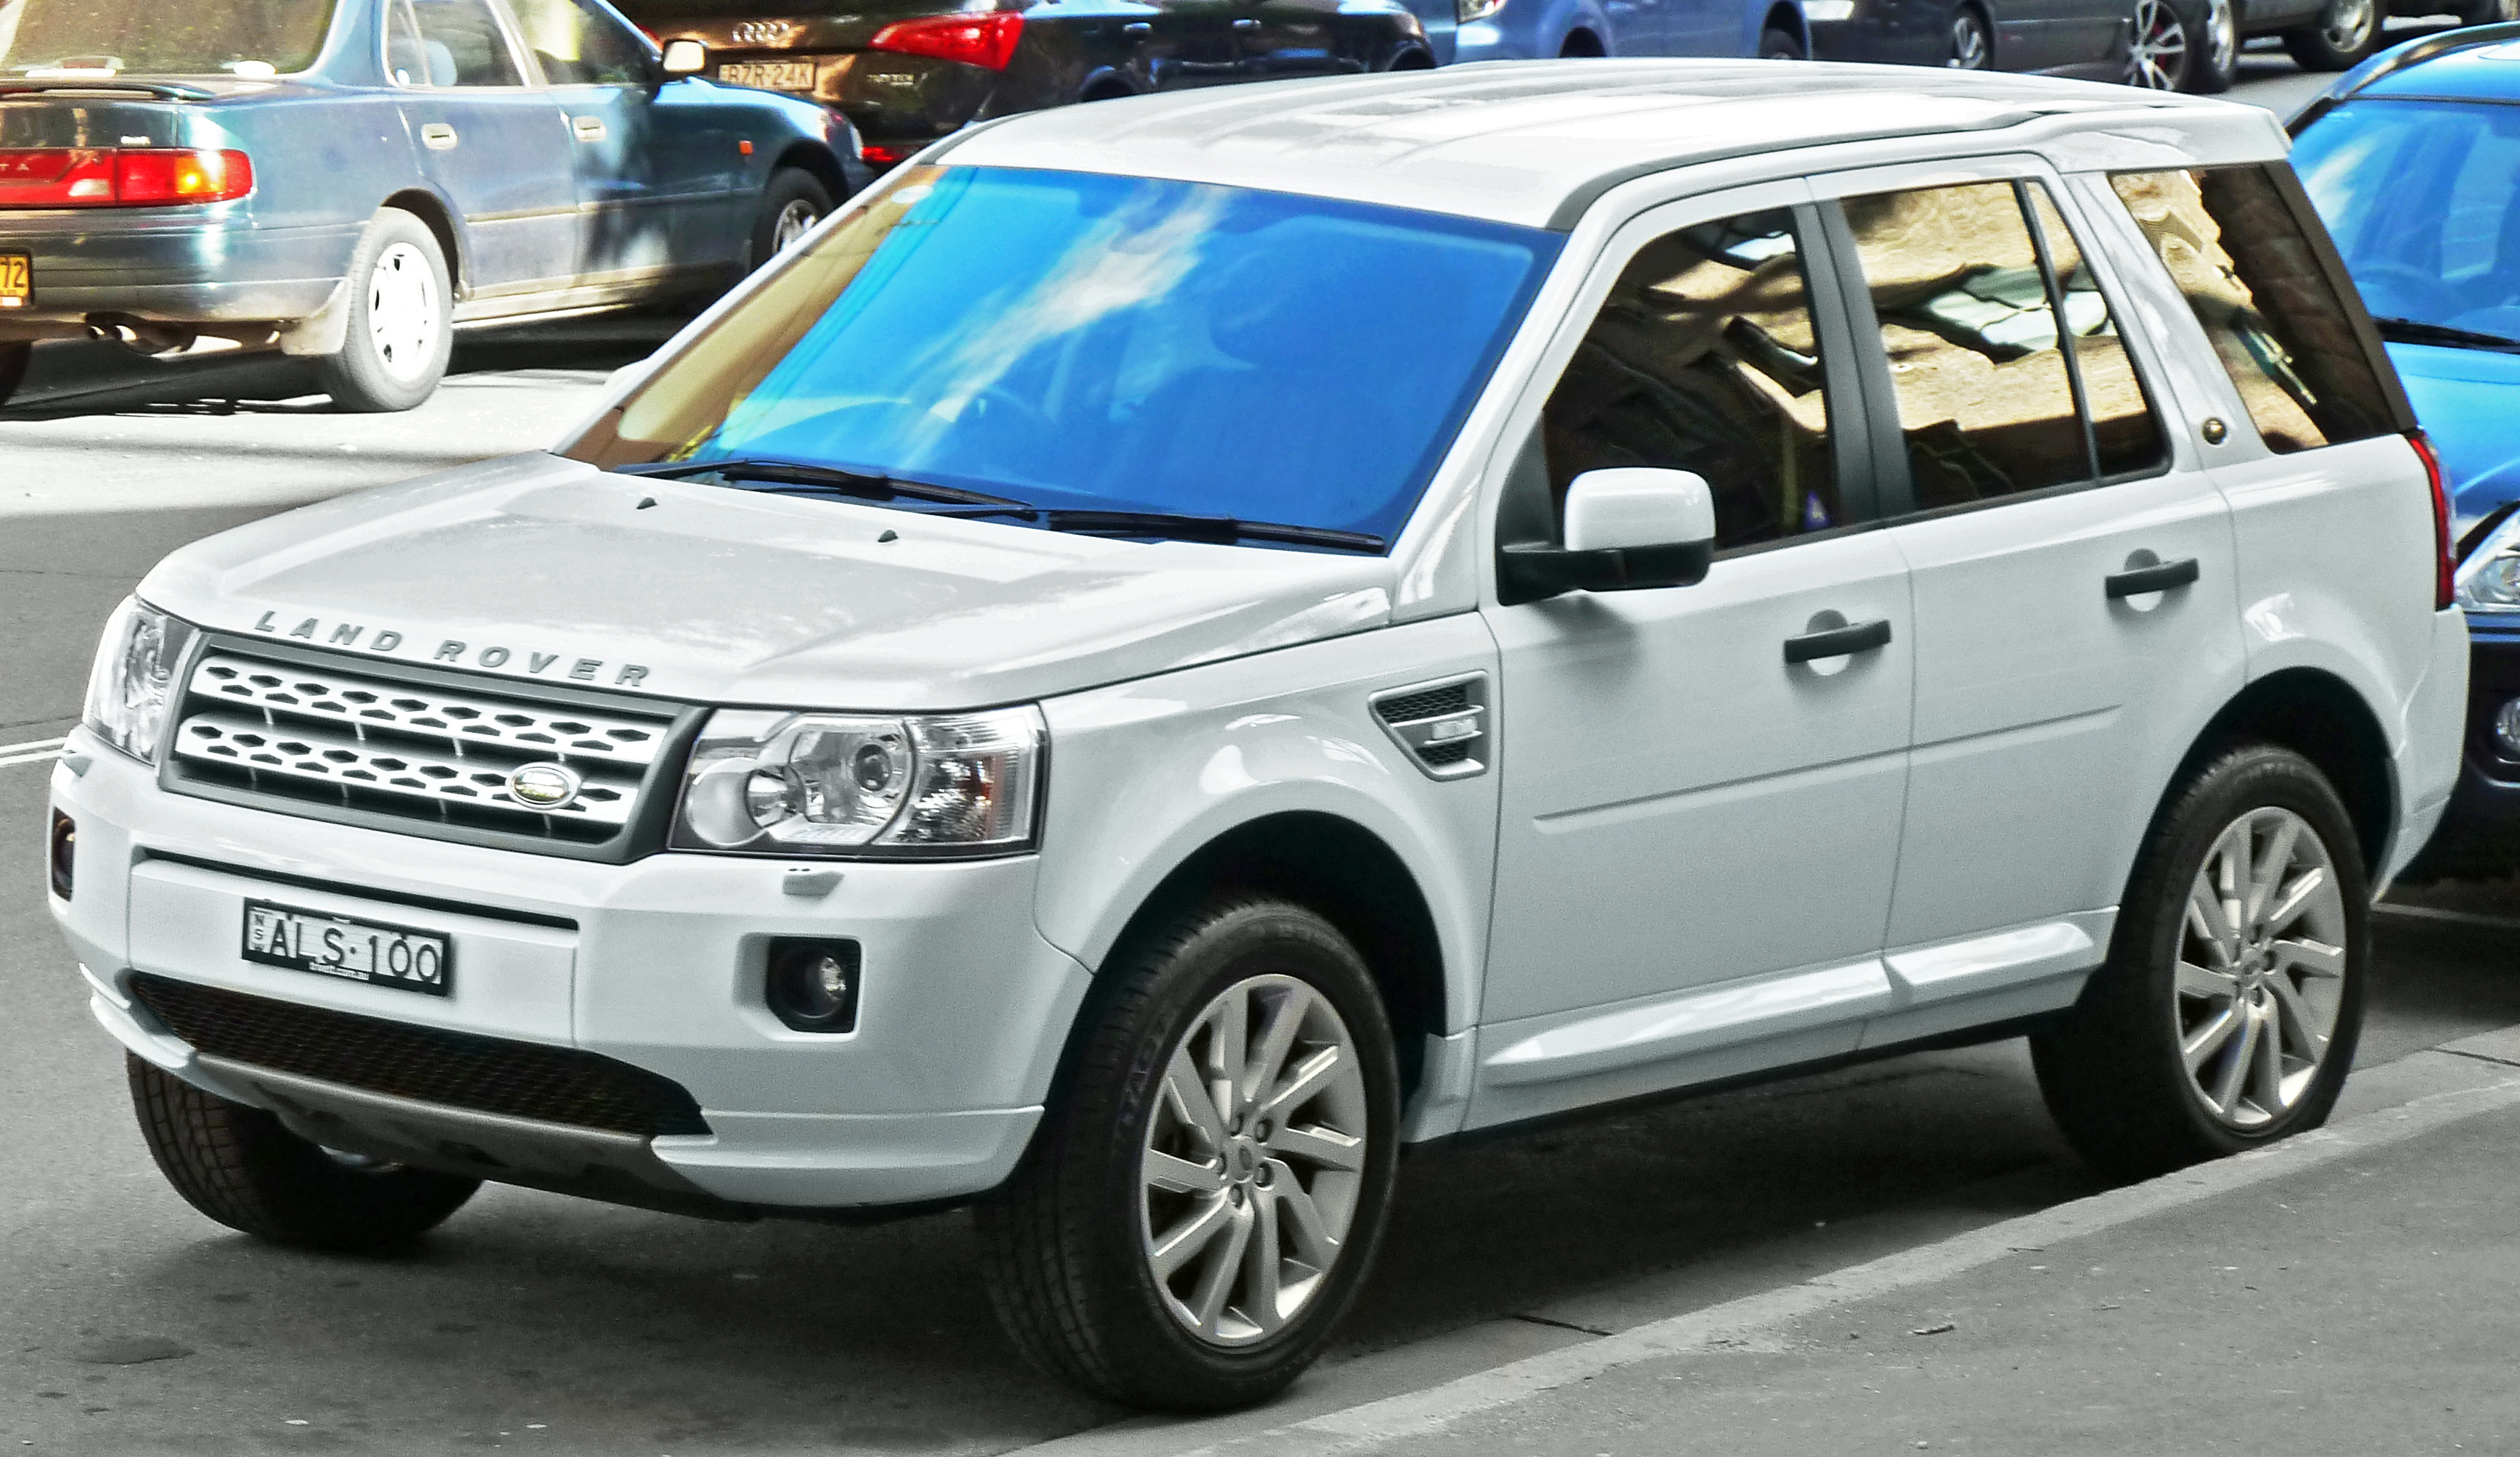 file 2010 2011 land rover freelander 2 lf xs si6 wagon 2011 10 31 wikimedia commons. Black Bedroom Furniture Sets. Home Design Ideas